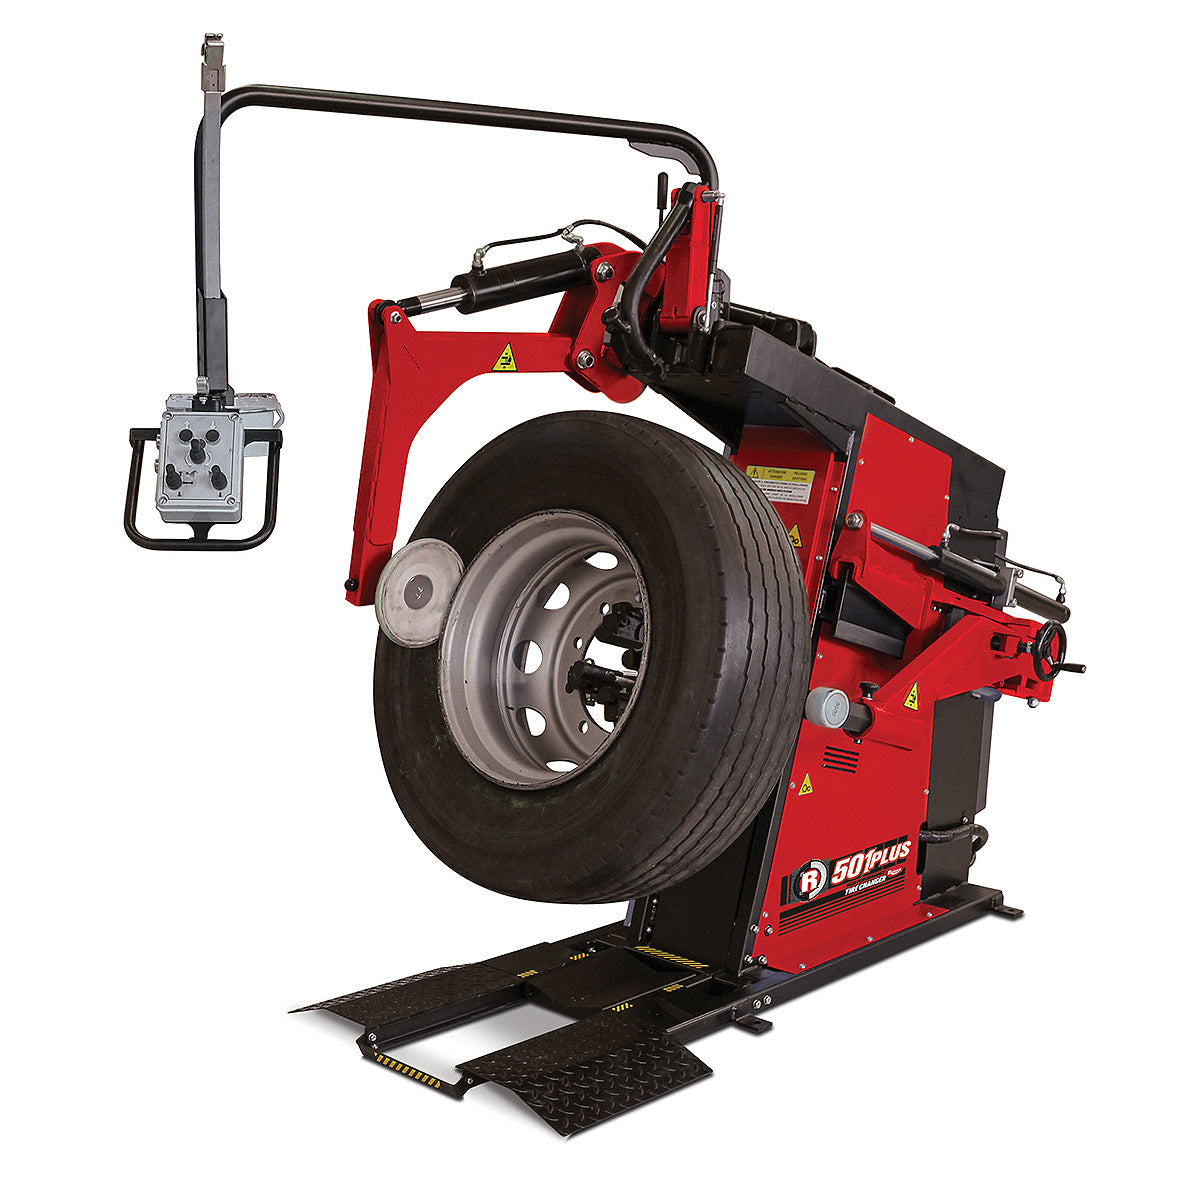 R501Plus Super Fast Truck Tire Changer